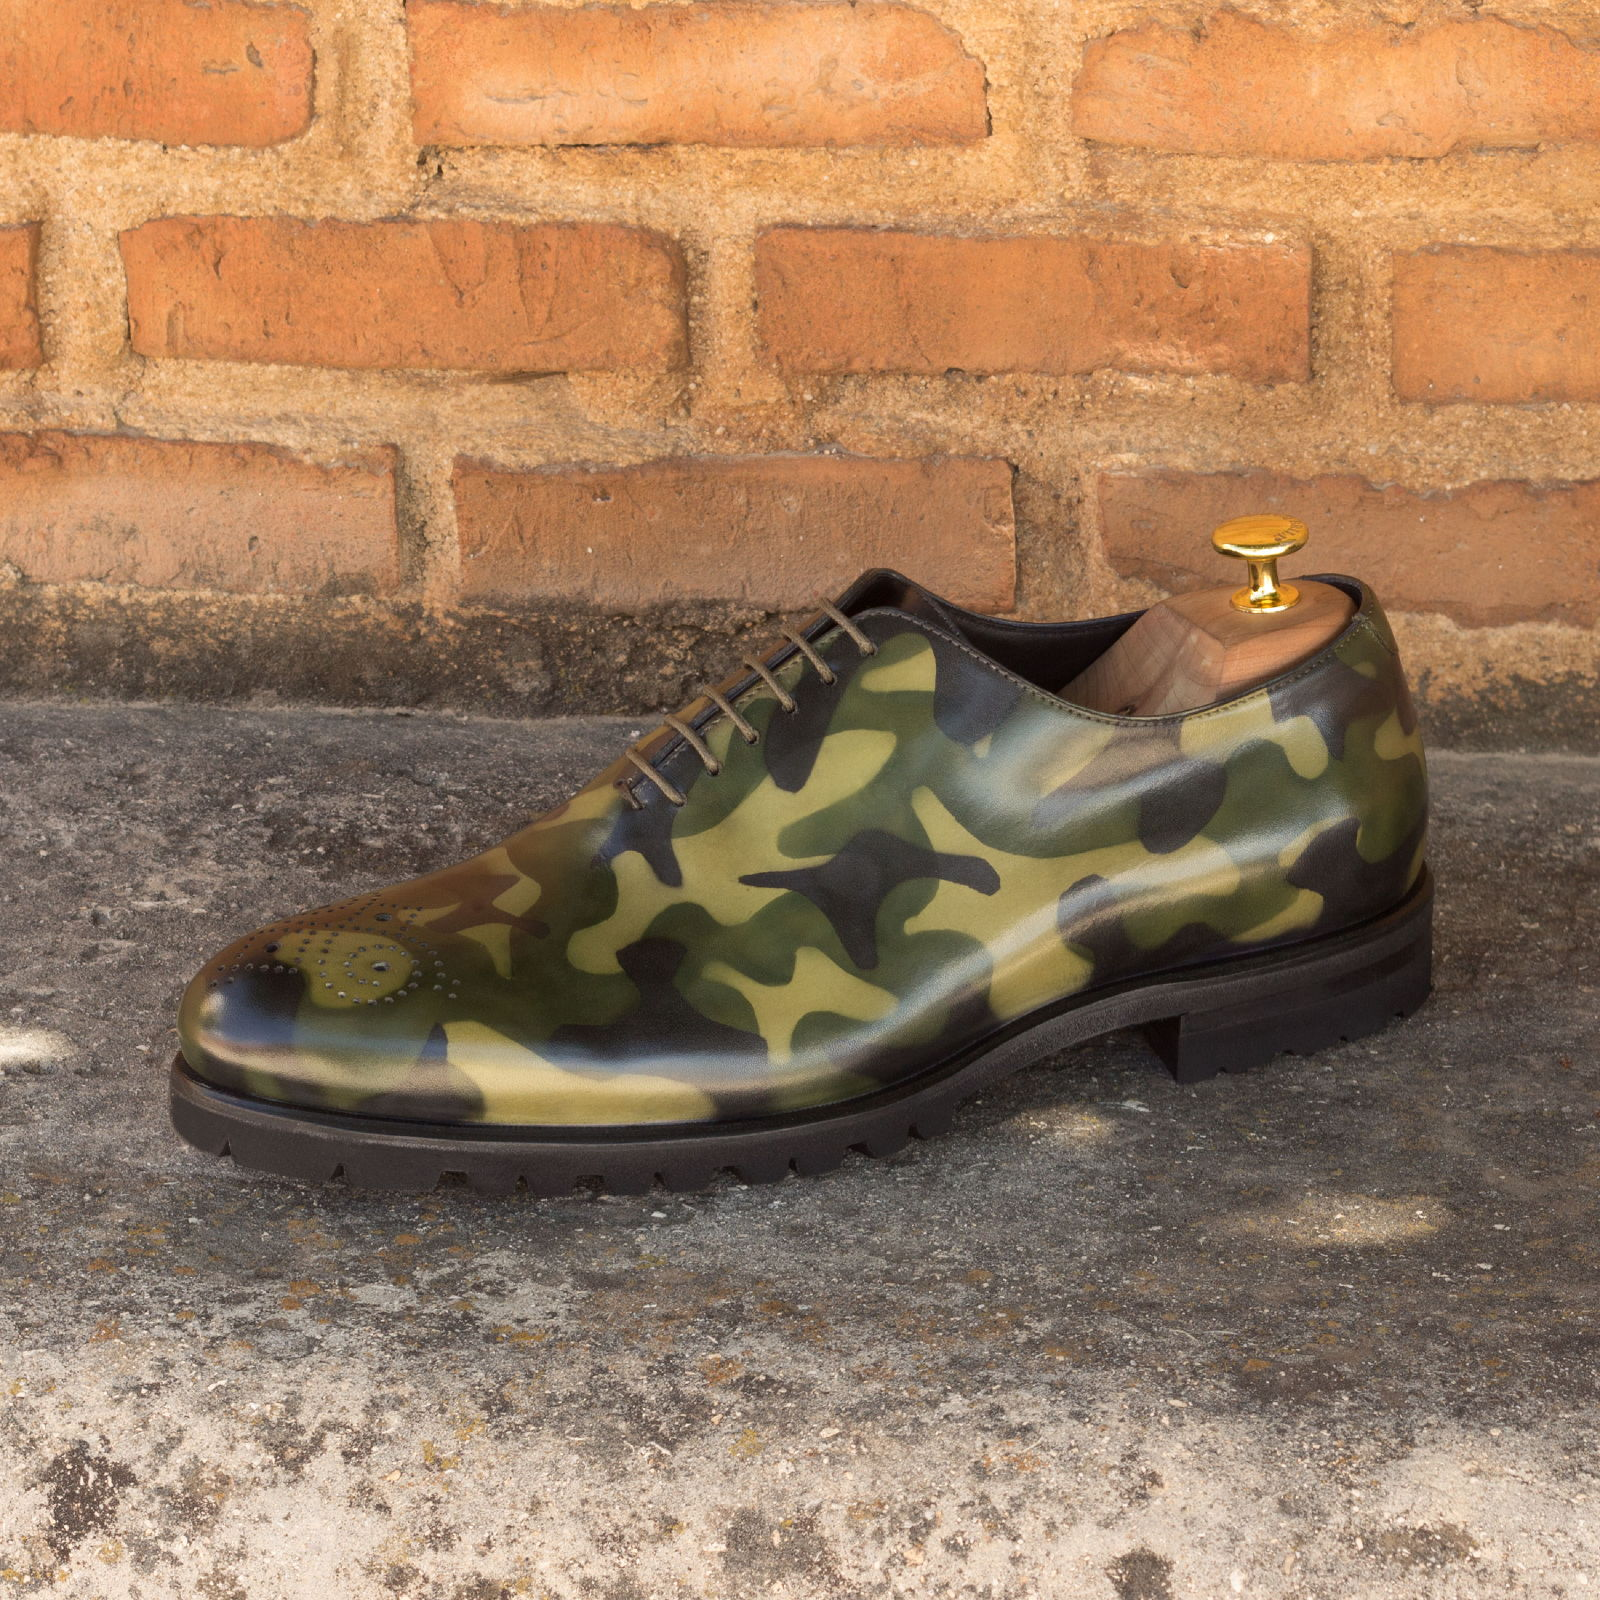 Whole cut  khaki camo patina : 330€